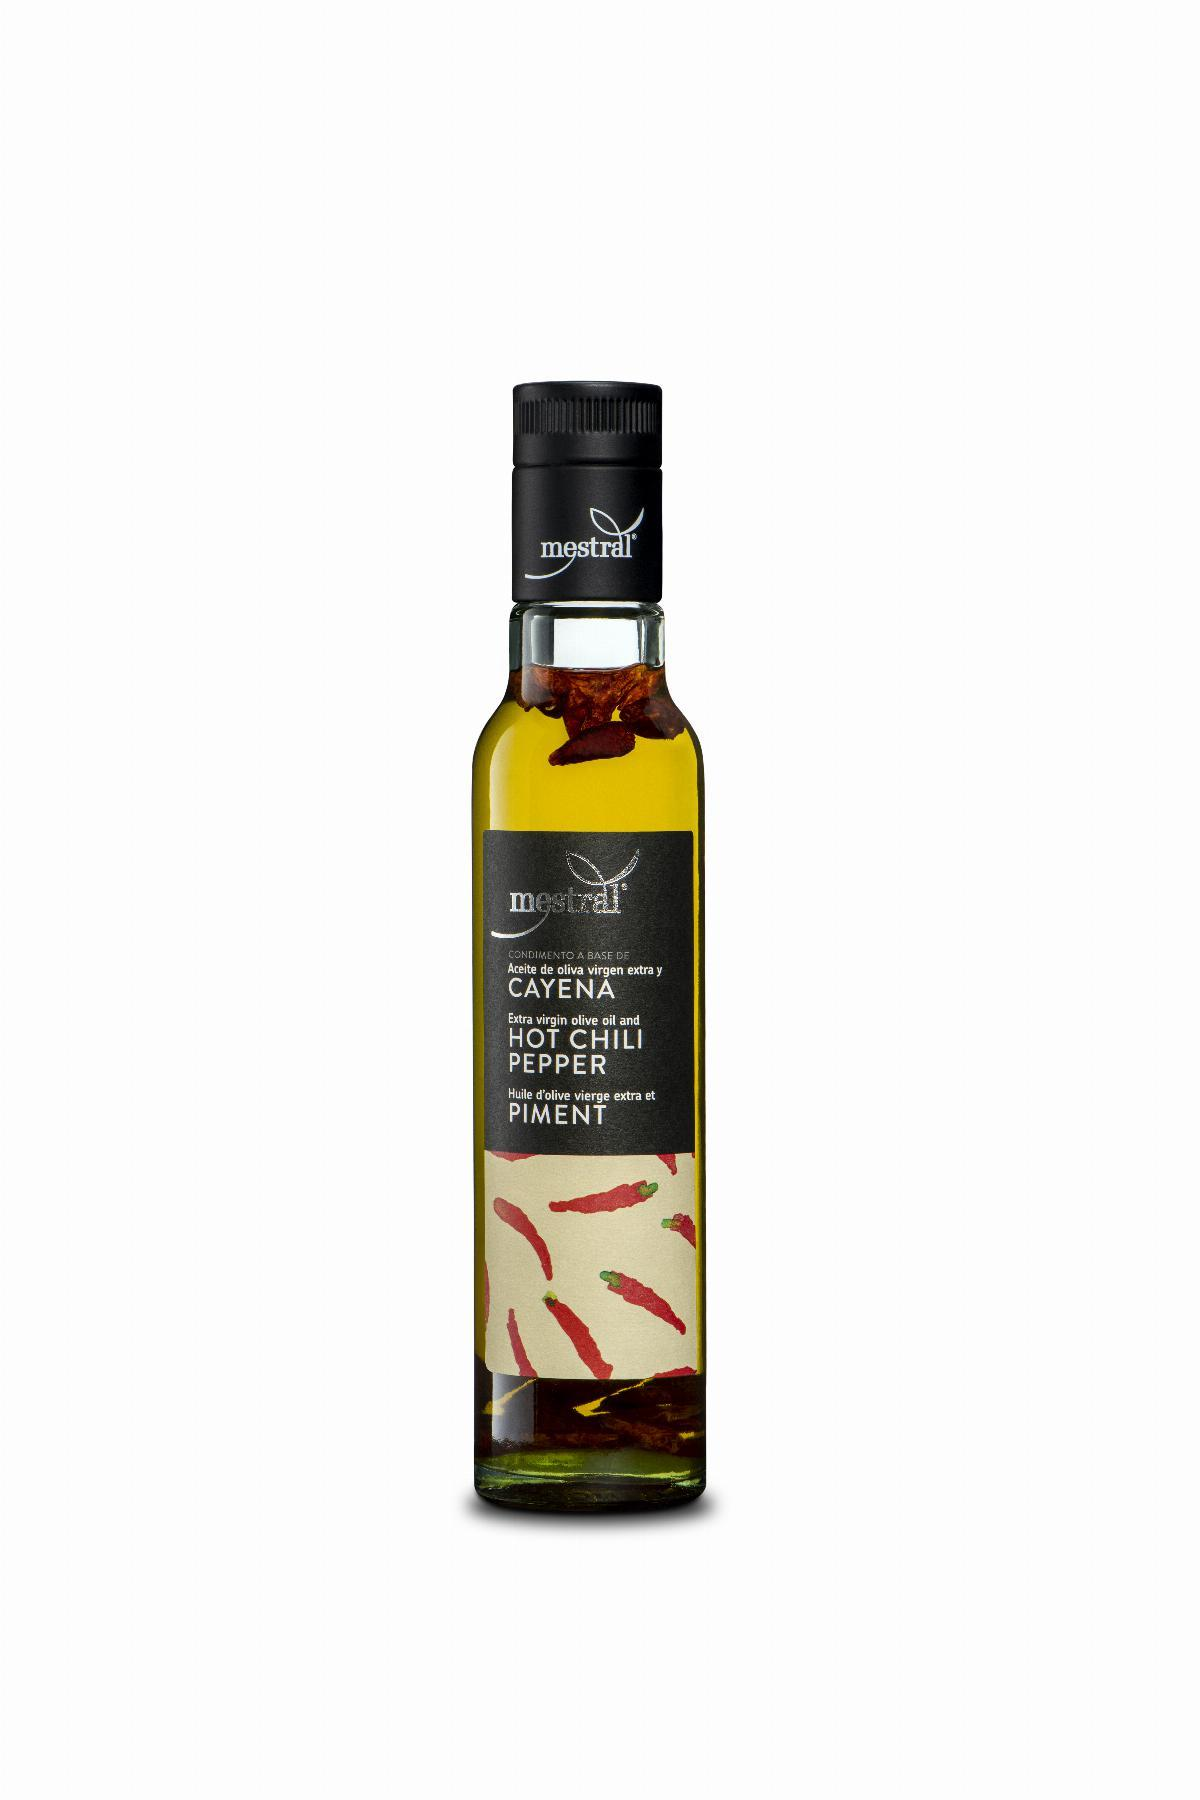 Mestral Extra Vigin Olive Oli and Hot Chili Pepper, bot. 250ml